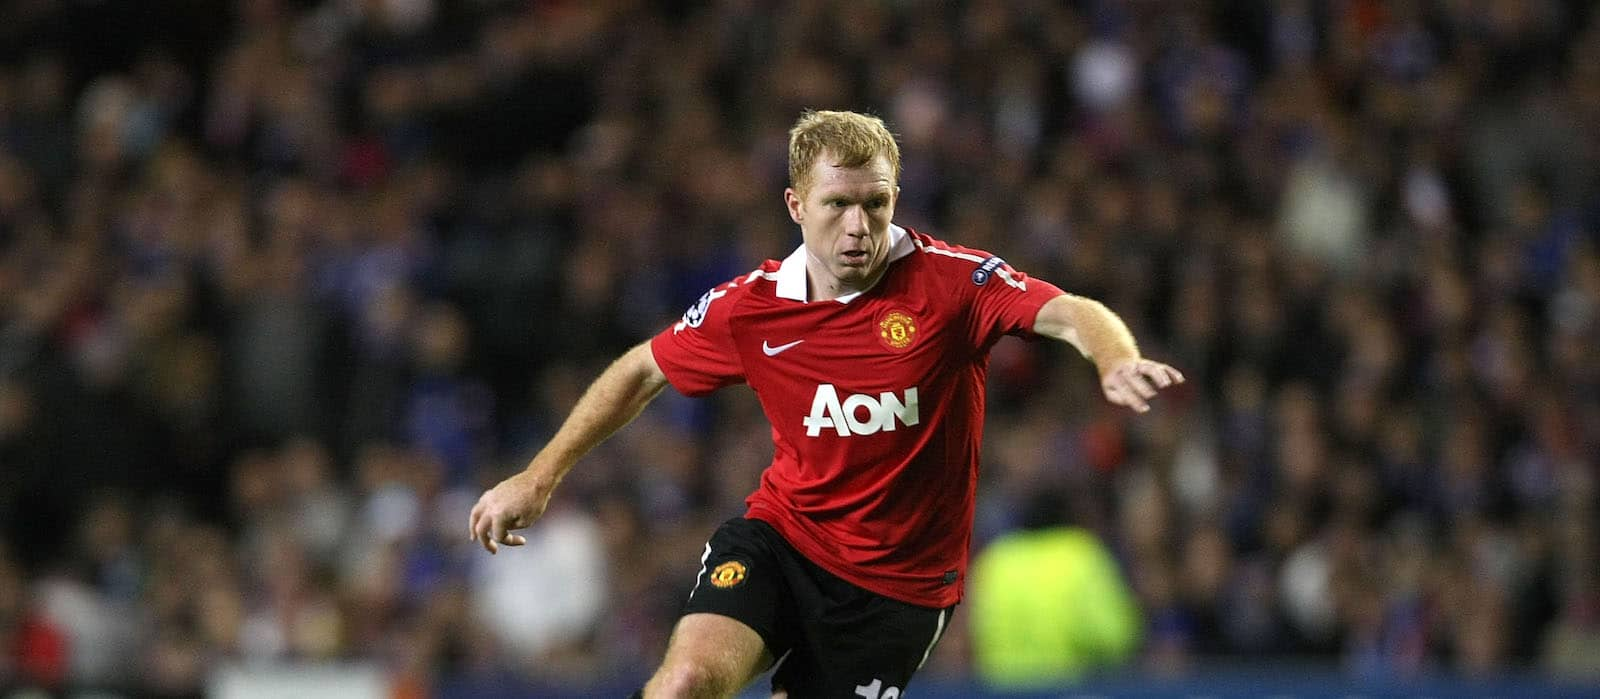 Former Manchester United assistant manager Mike Phelan hits back at Mino Raiola over Paul Scholes comments